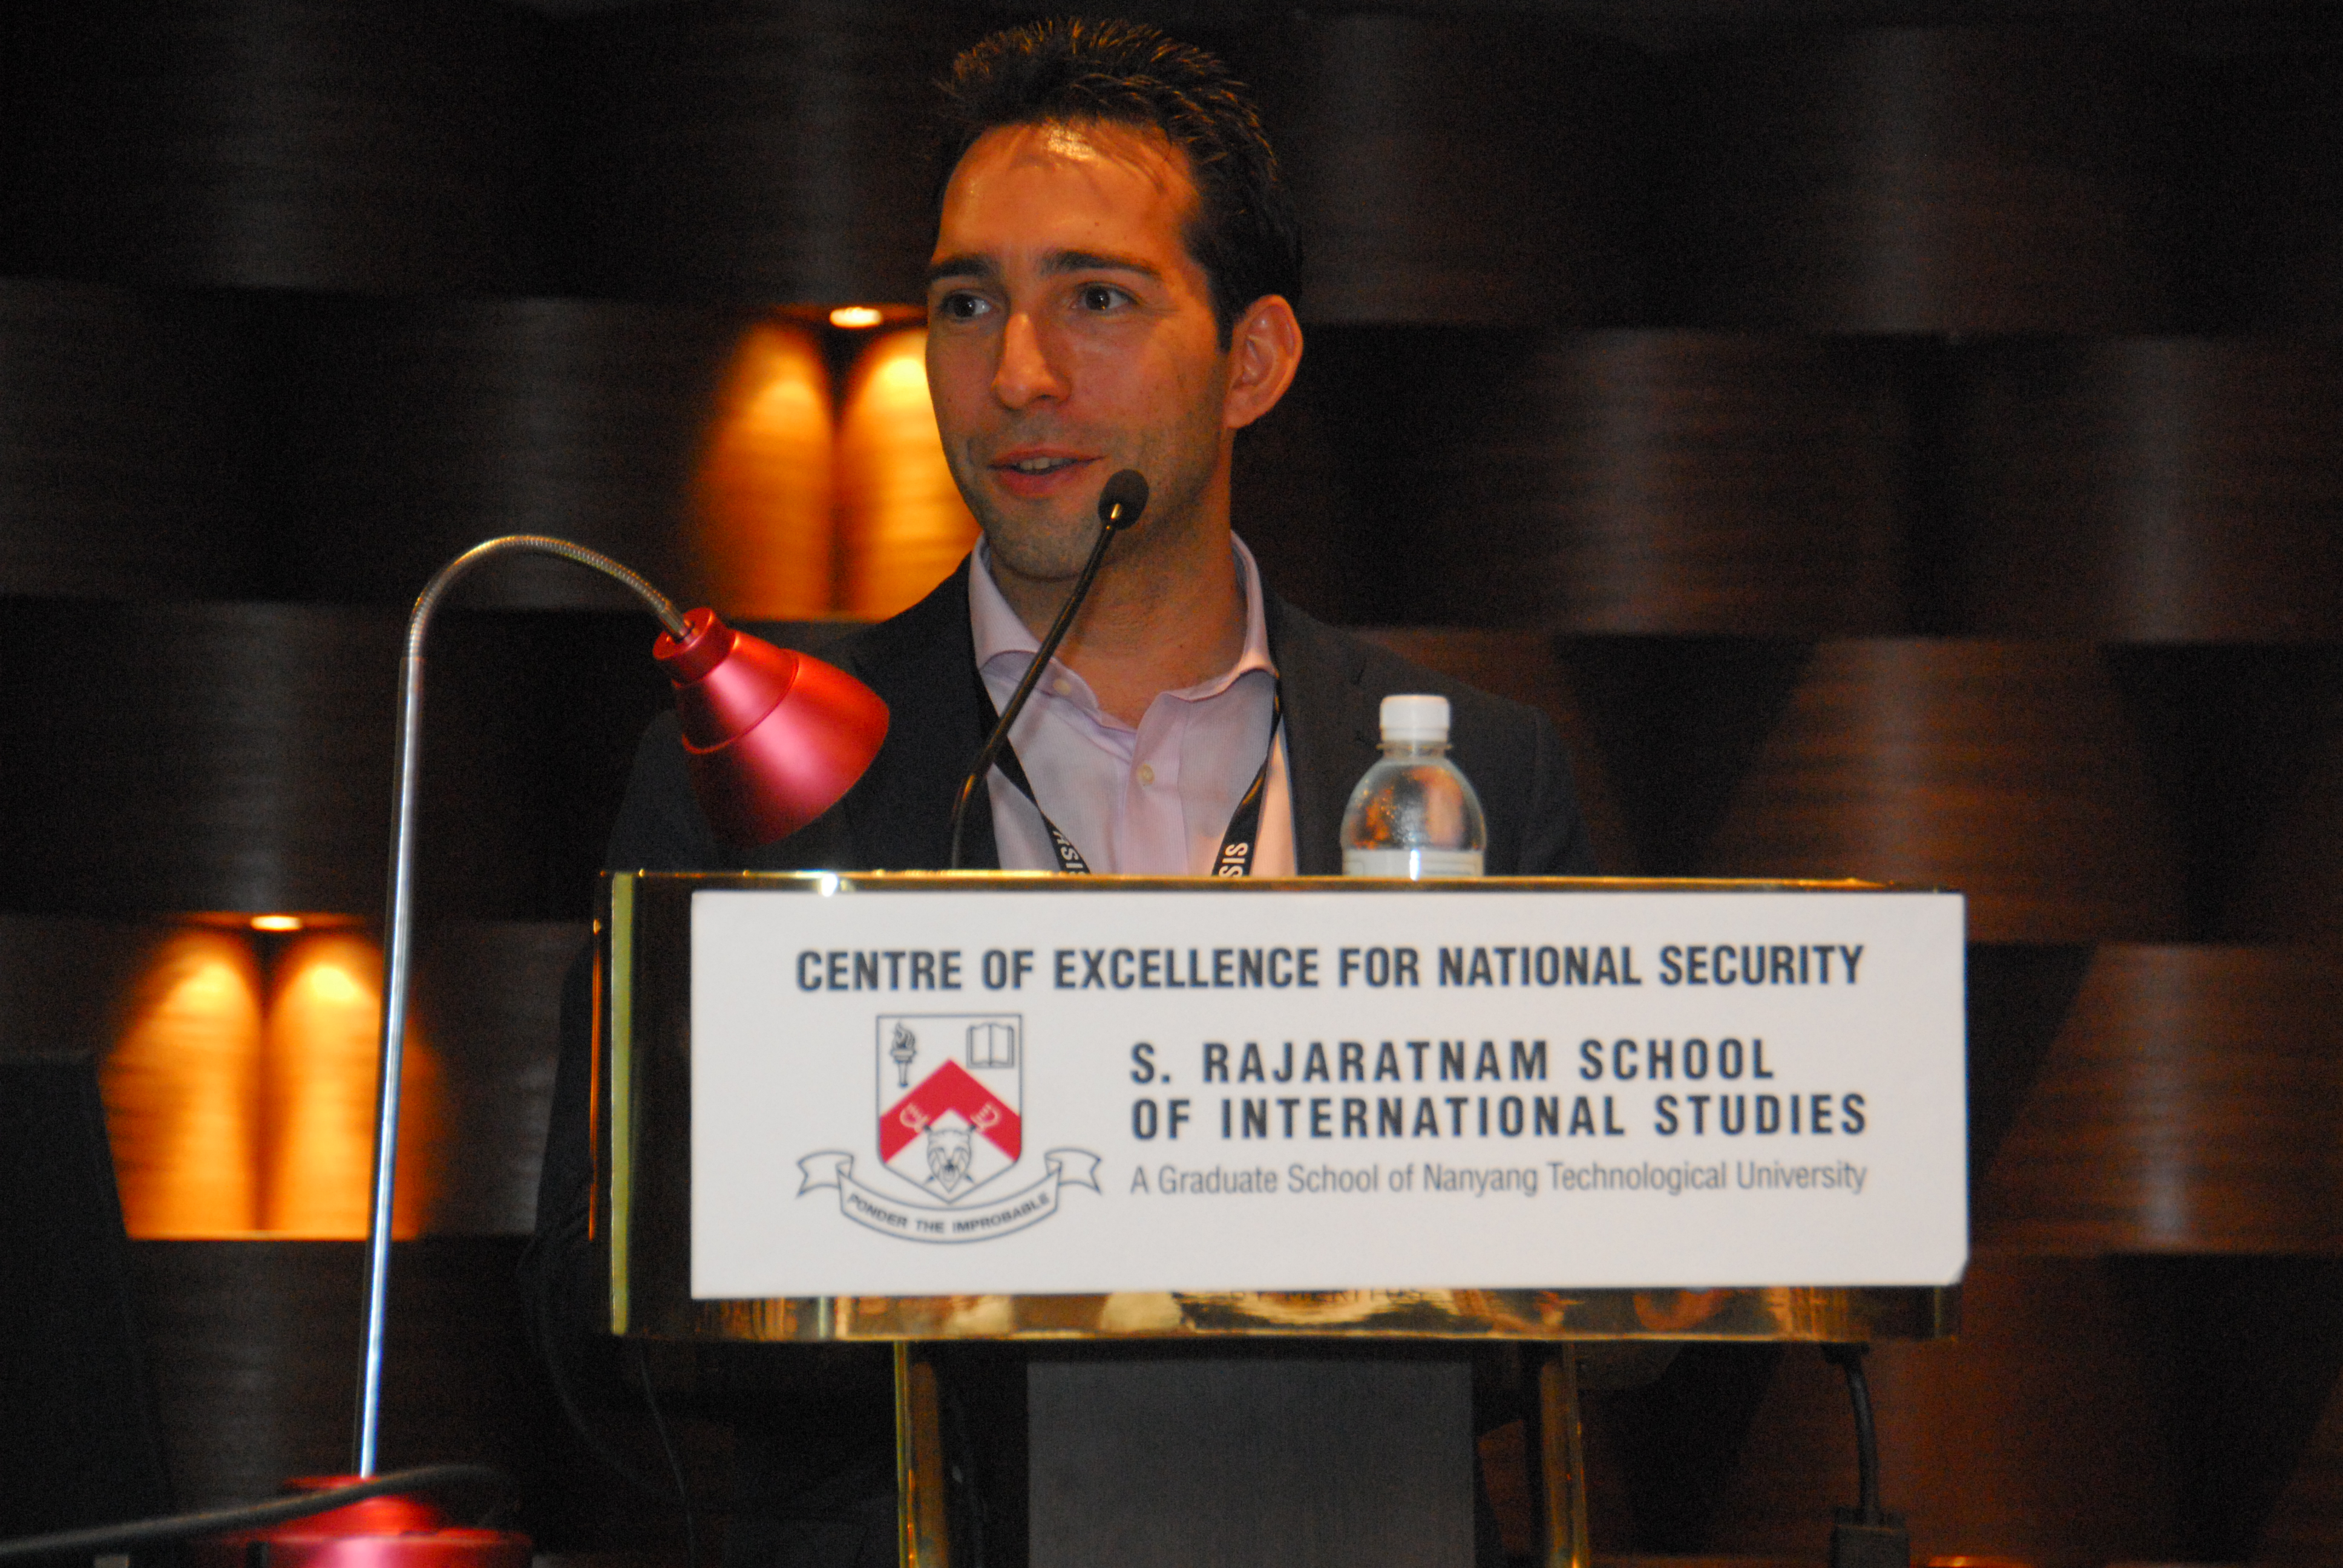 Dr Diego Acosta Arcarazo, Lecturer in European Law, Law School